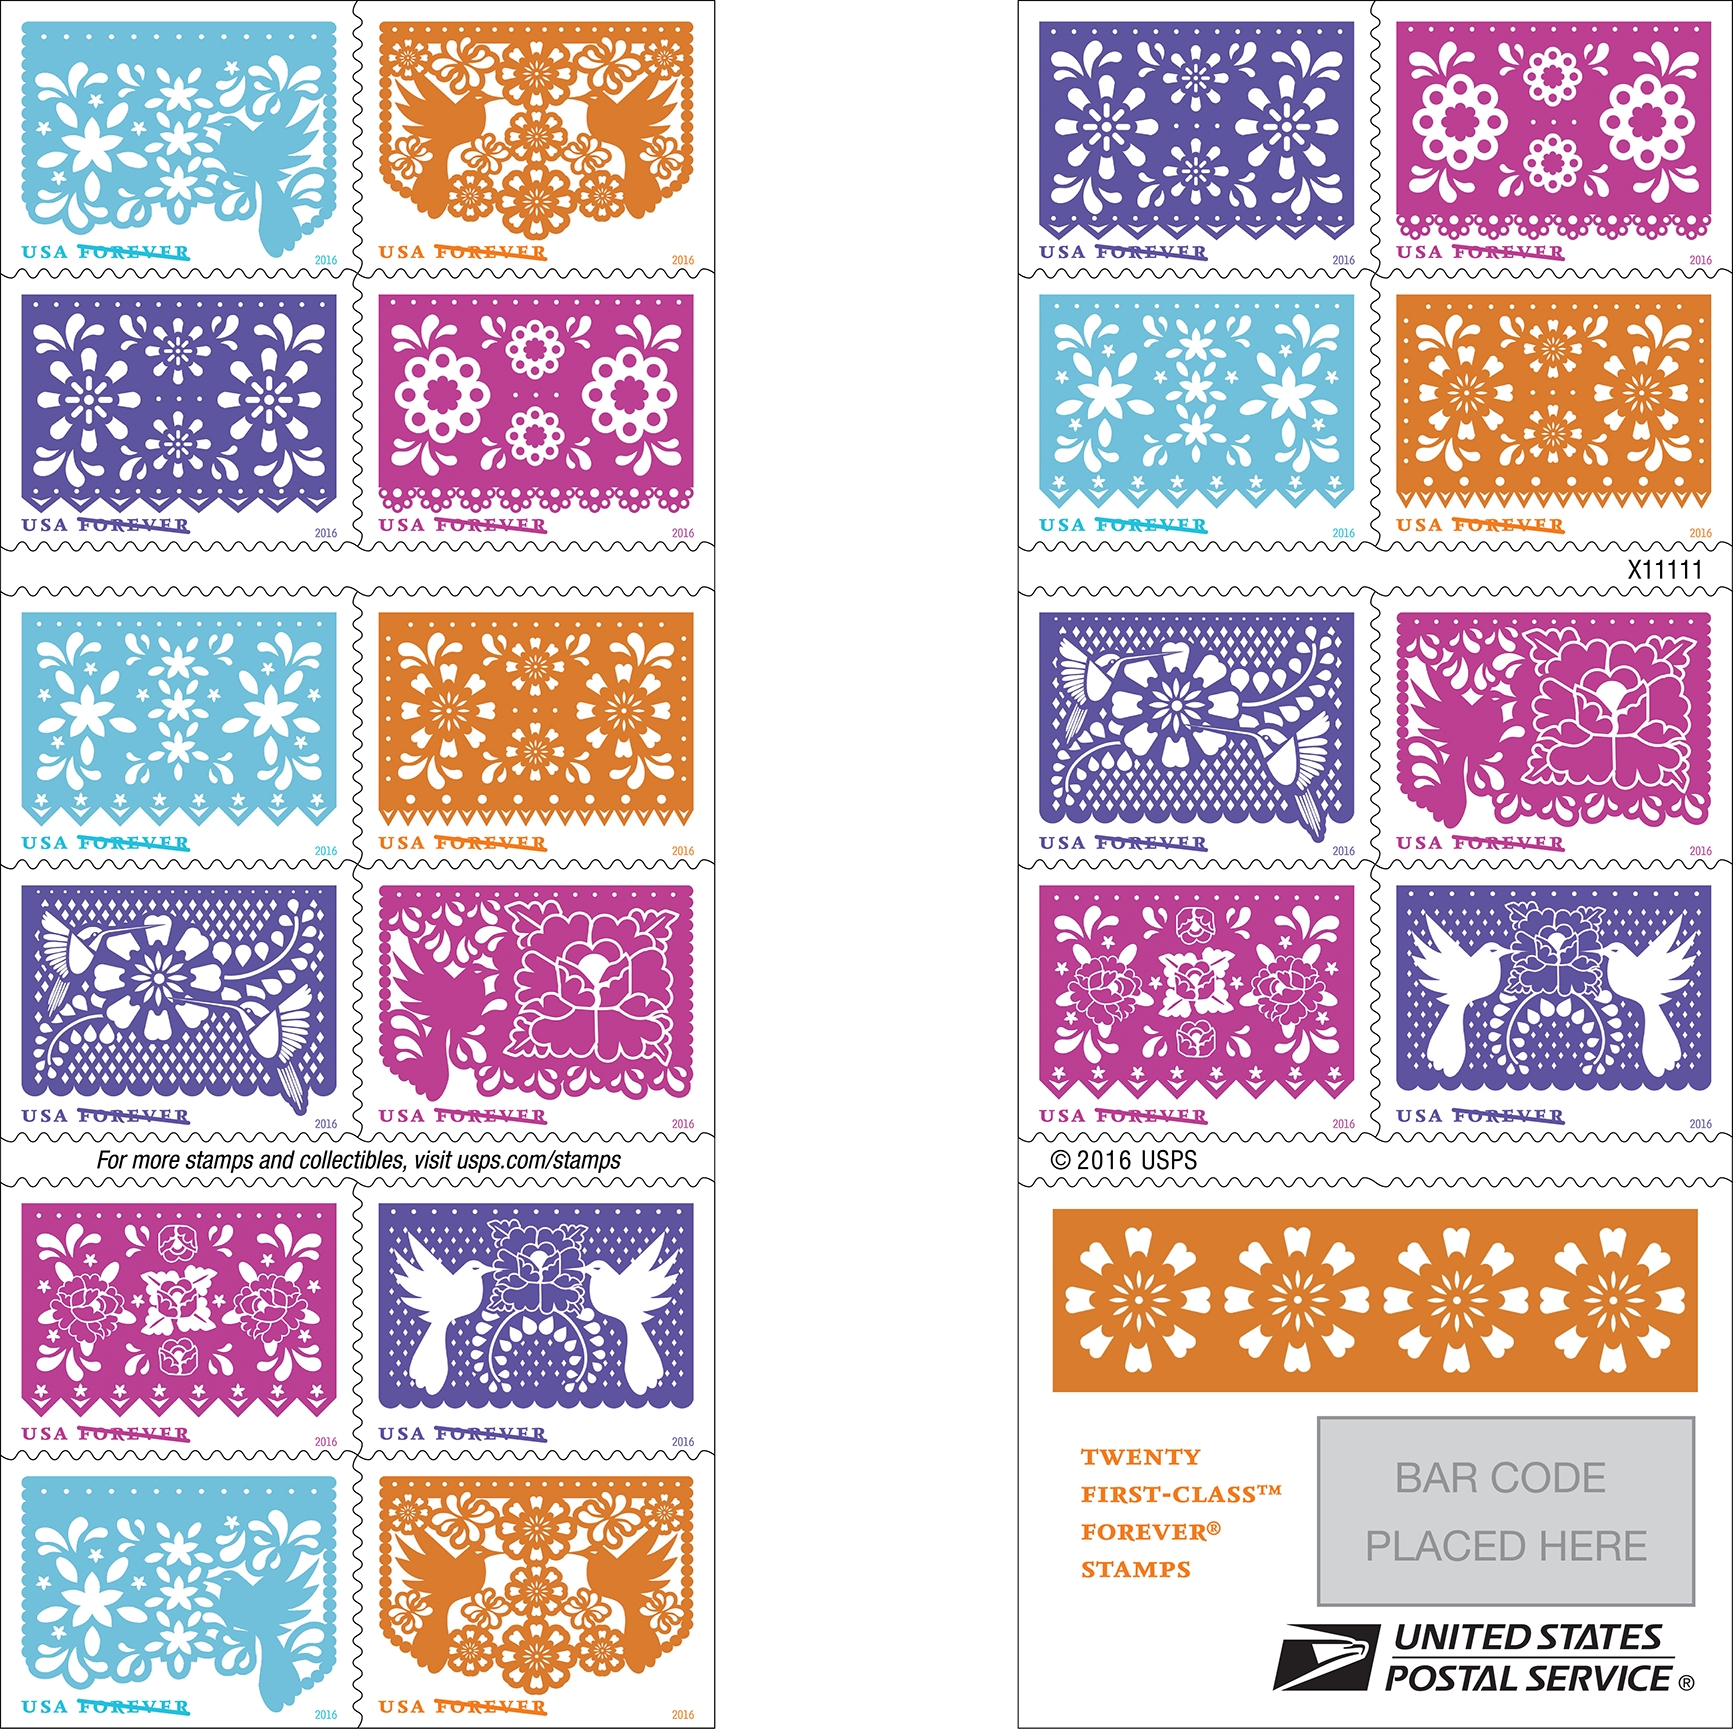 new forever stamps booklet